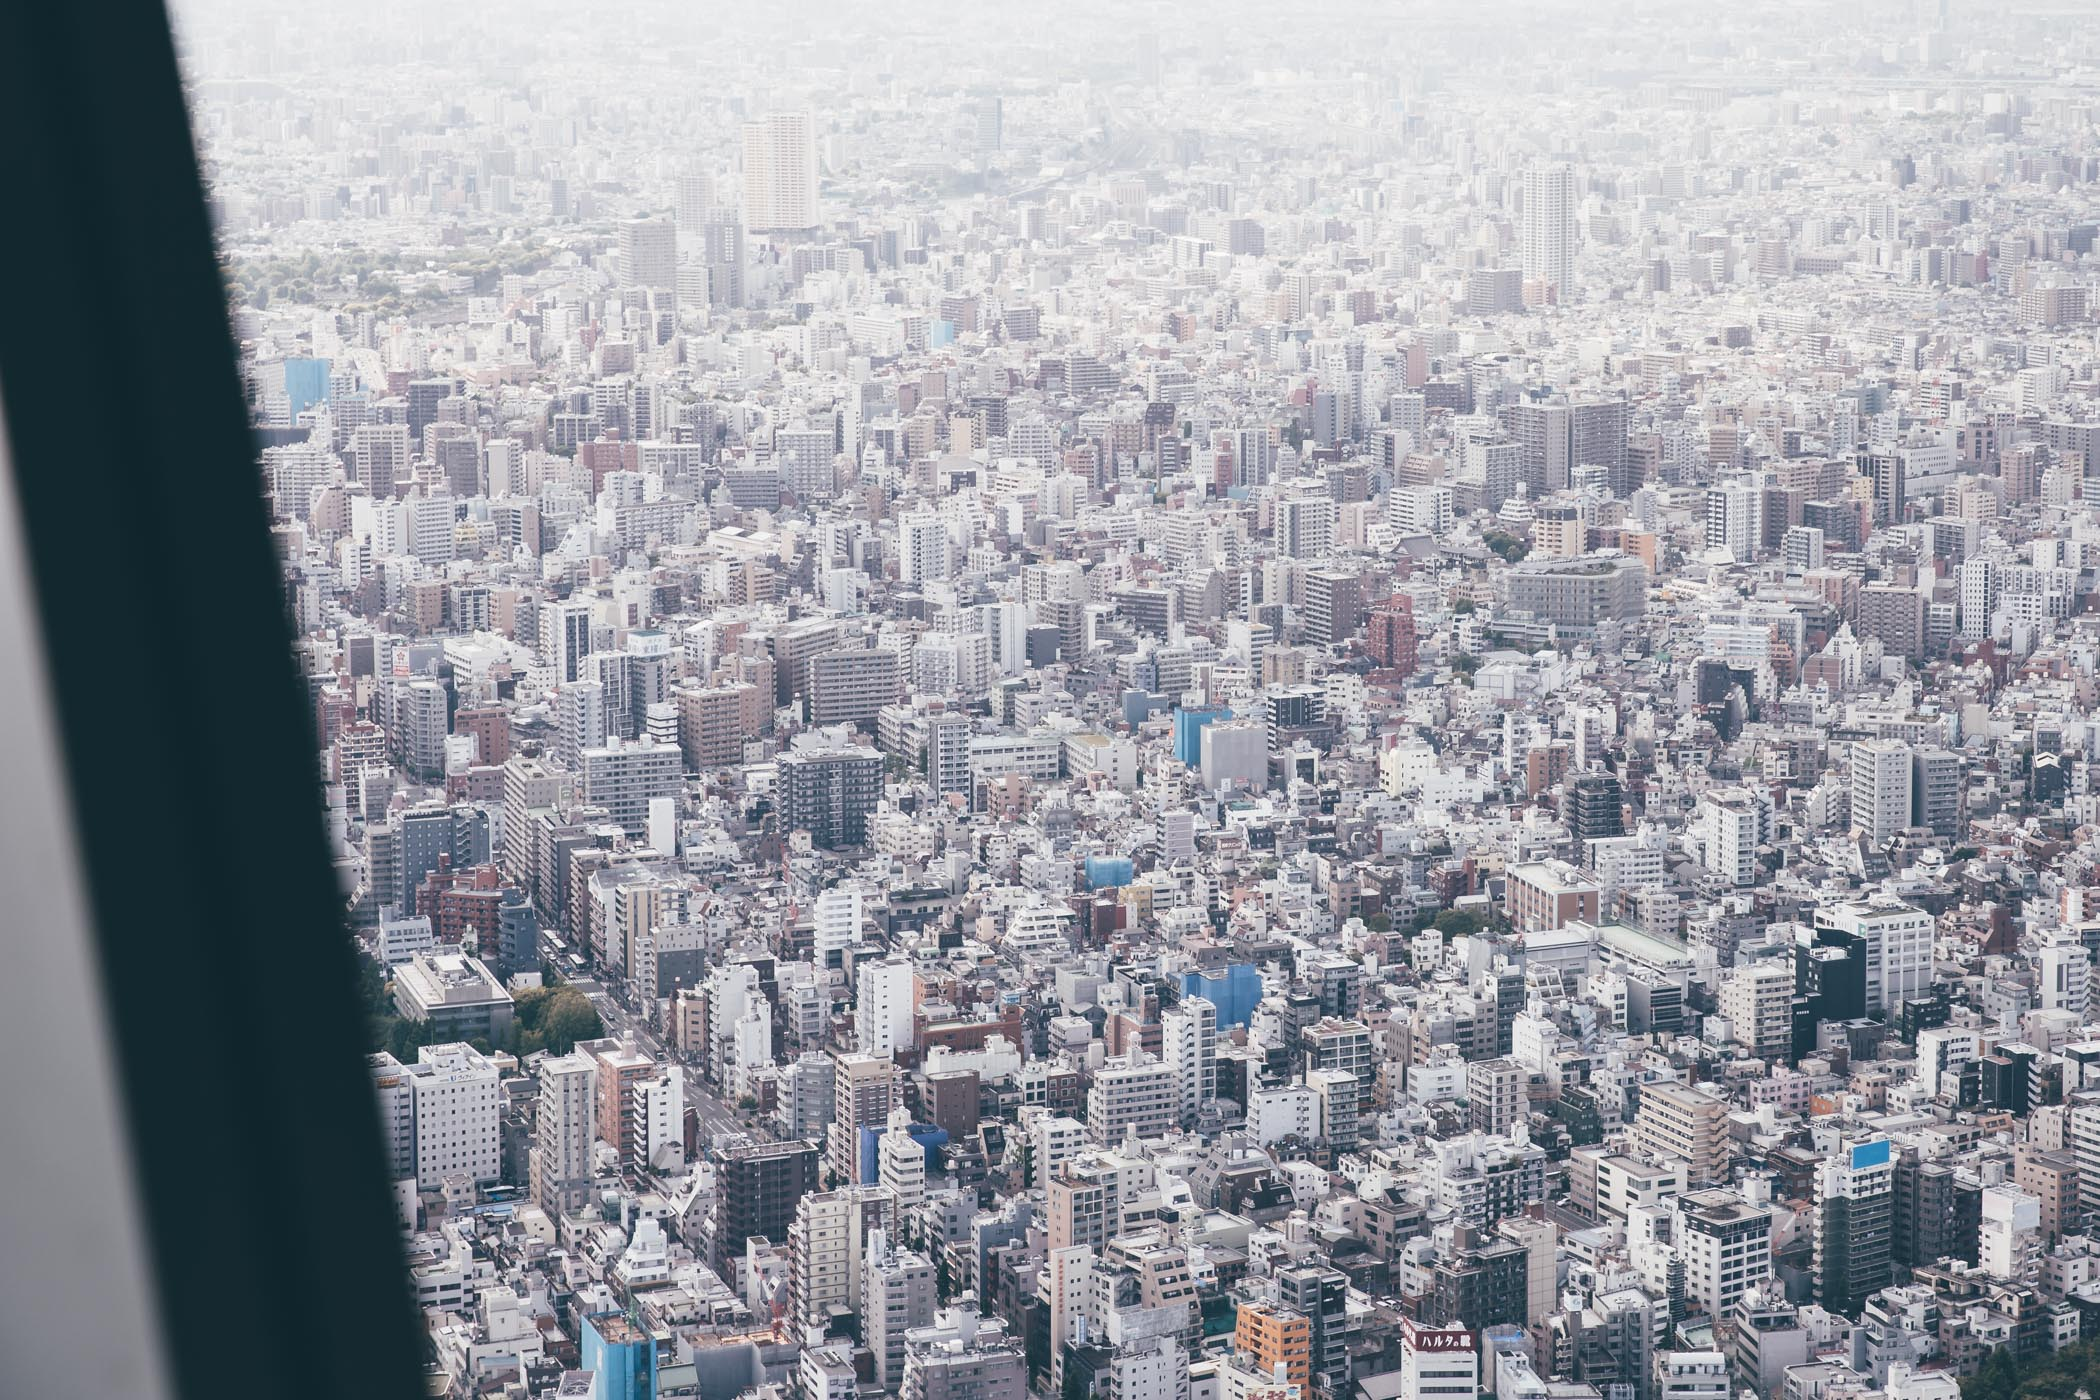 Tokyo as seen from above